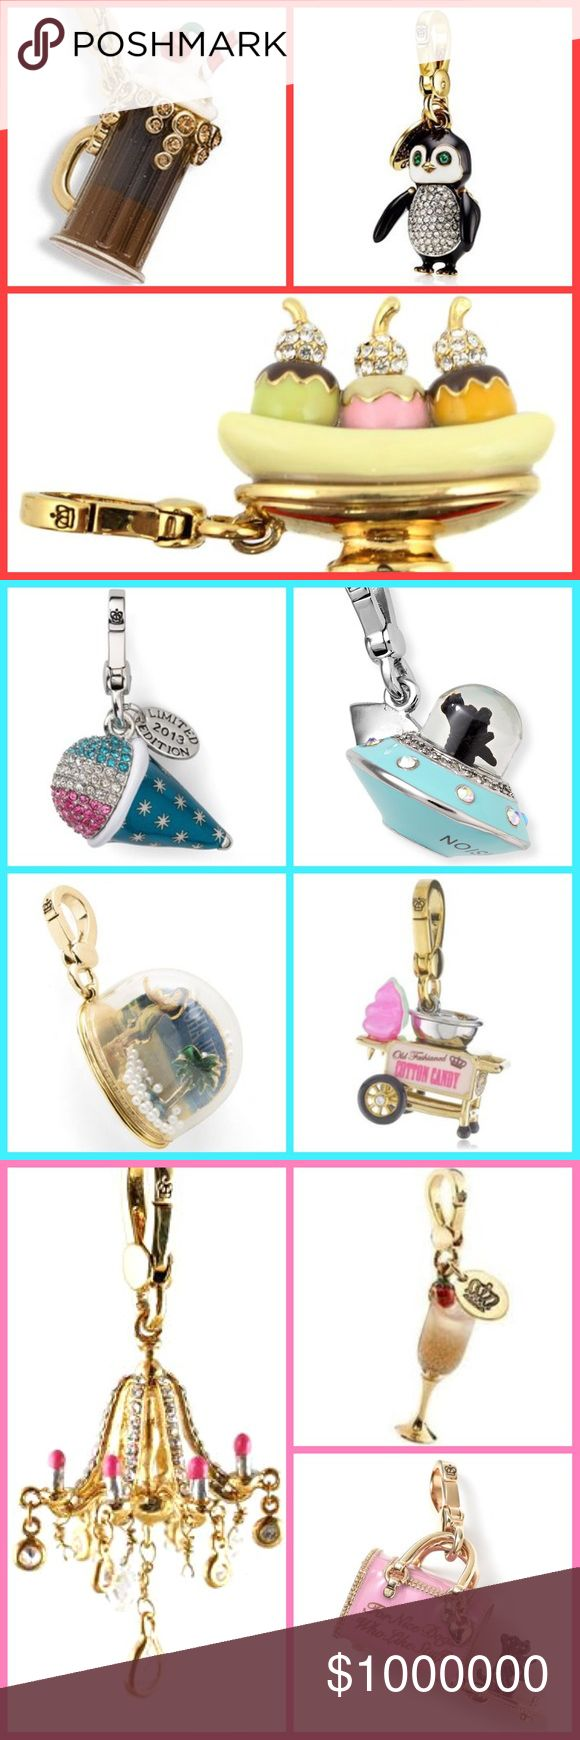 ISO JUICY COUTURE CHARMS I am Looking for these juicy charms to buy for myself: hot air balloon pancakes popsicle margarita coconut drink mojito lemon Rootbeer root beer float penguin butterfly corset banana split sno cone UFO puppy Hawaii snow globe cotton candy maker machine lipstick chandelier champagne glass strawberry pink Yorkie dog carrier bag(please make sure the words are not scratched off at all) ballerina ballet slippers shoes bird bath bonsai tree jewelry music box flamingo…